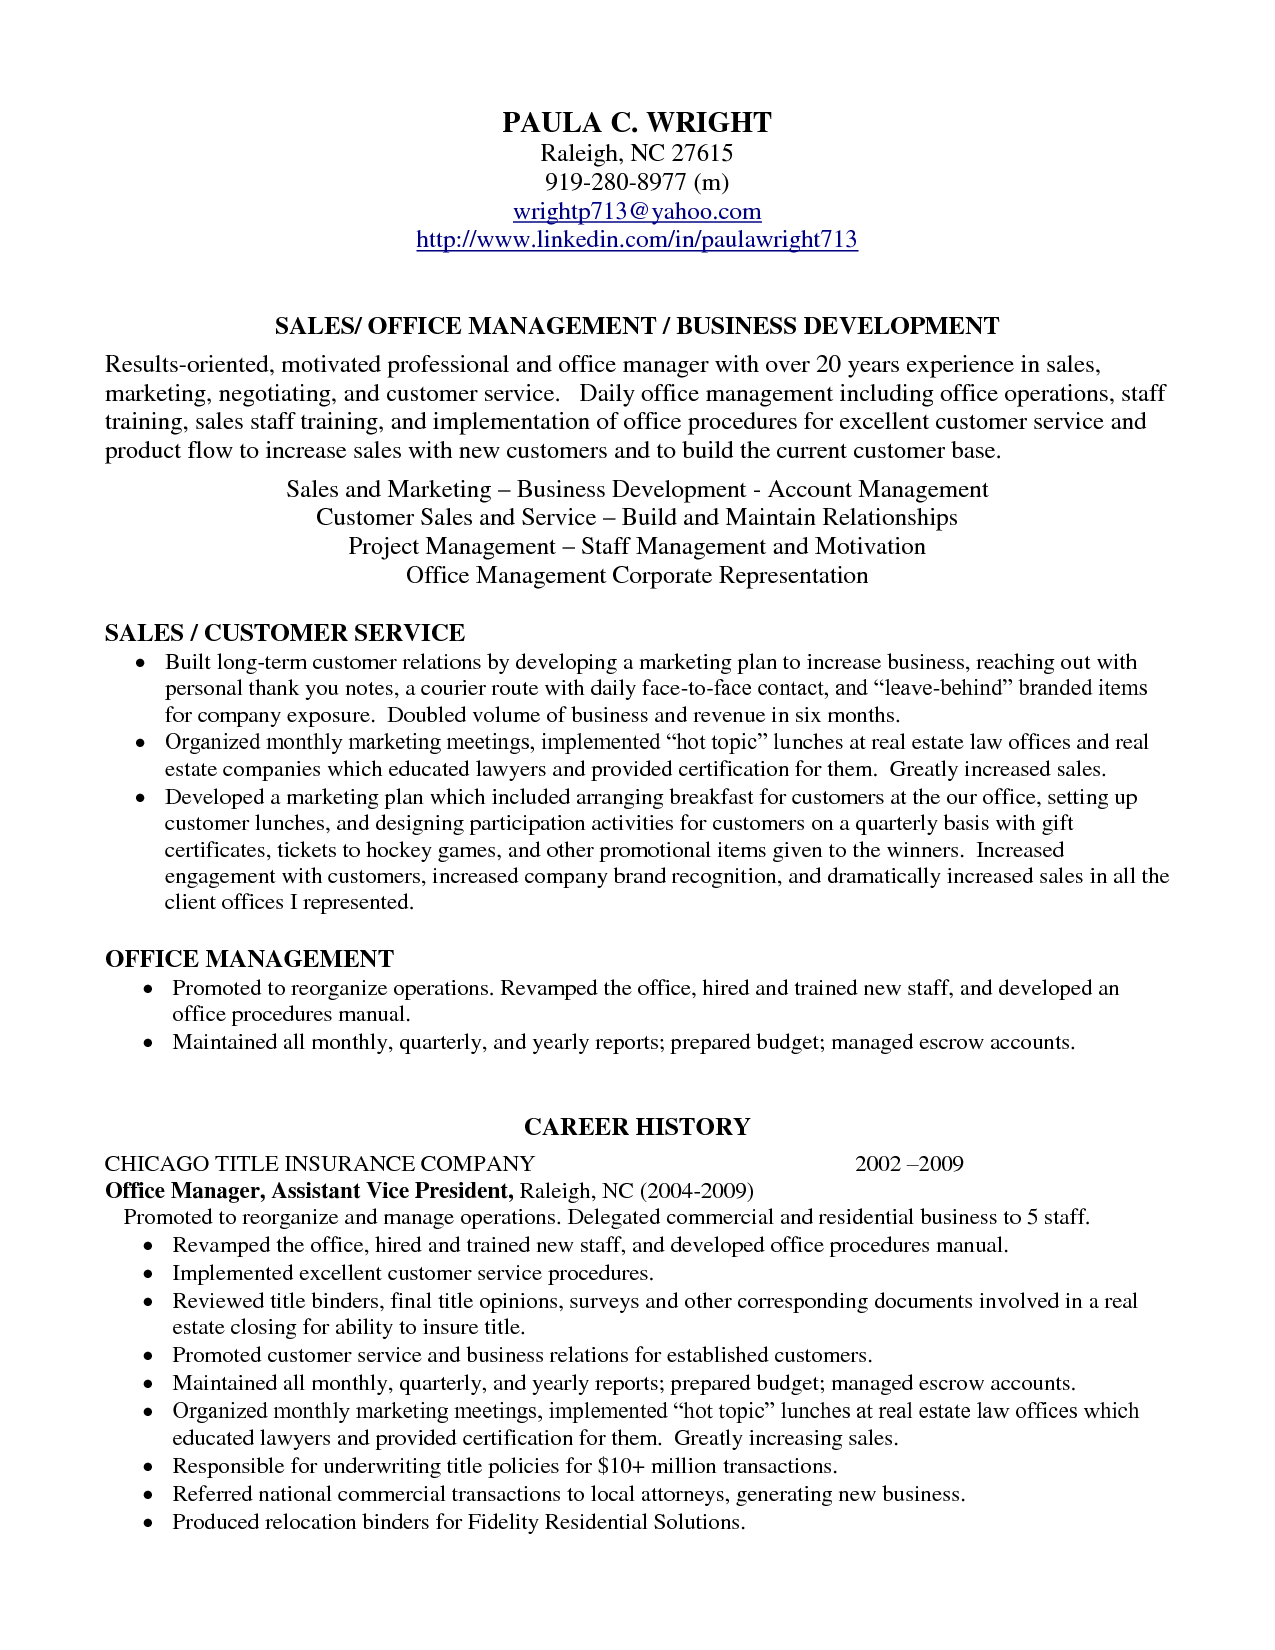 Example of resume profile